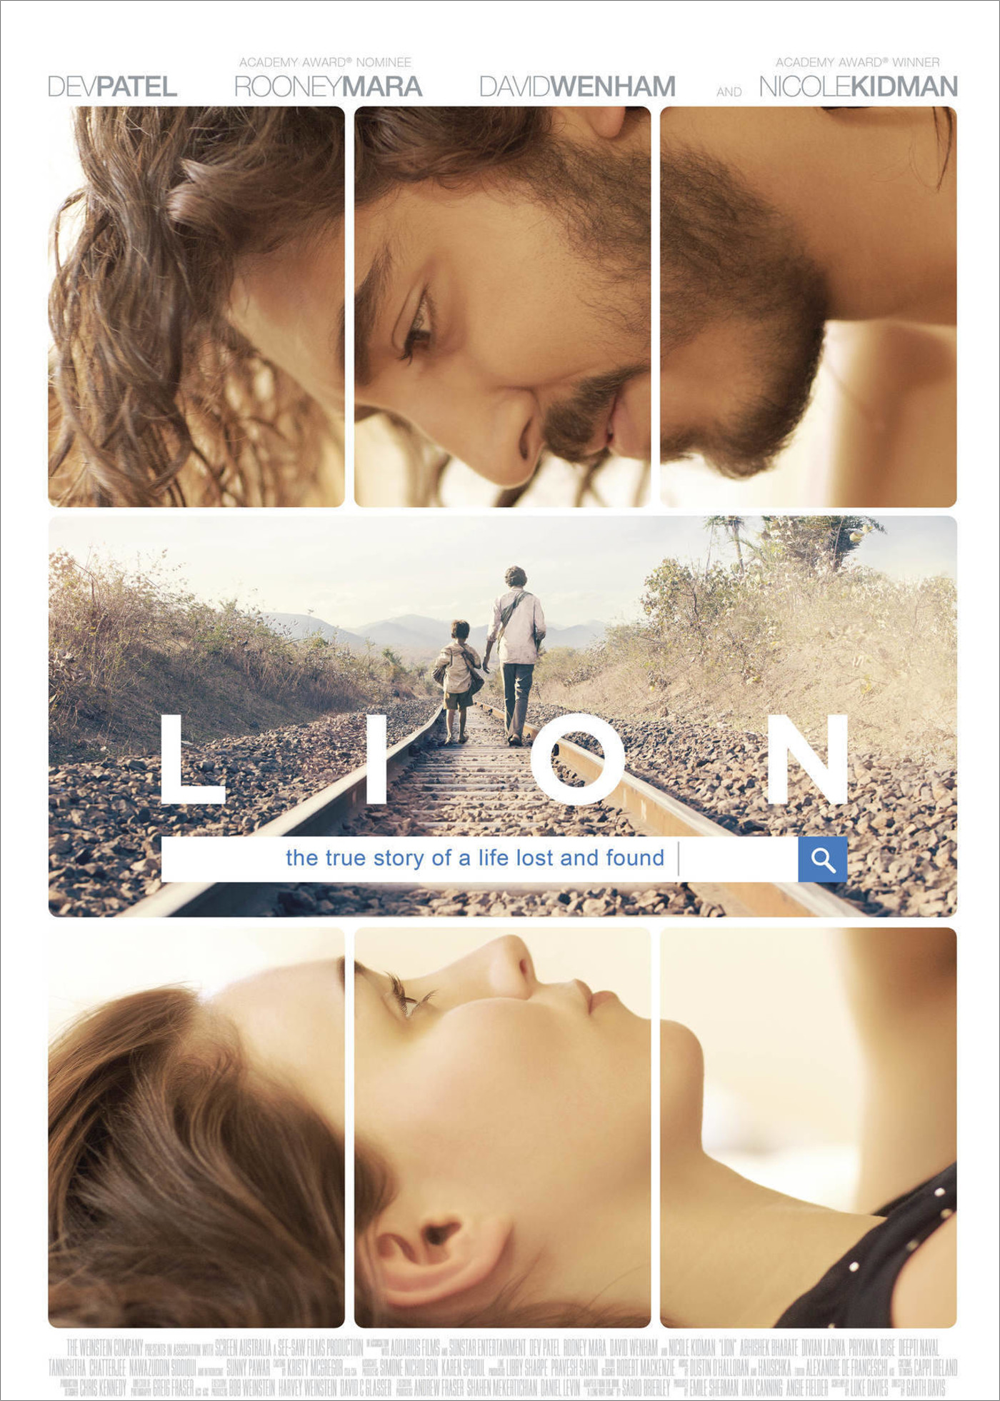 full poster for the adoption movie Lion